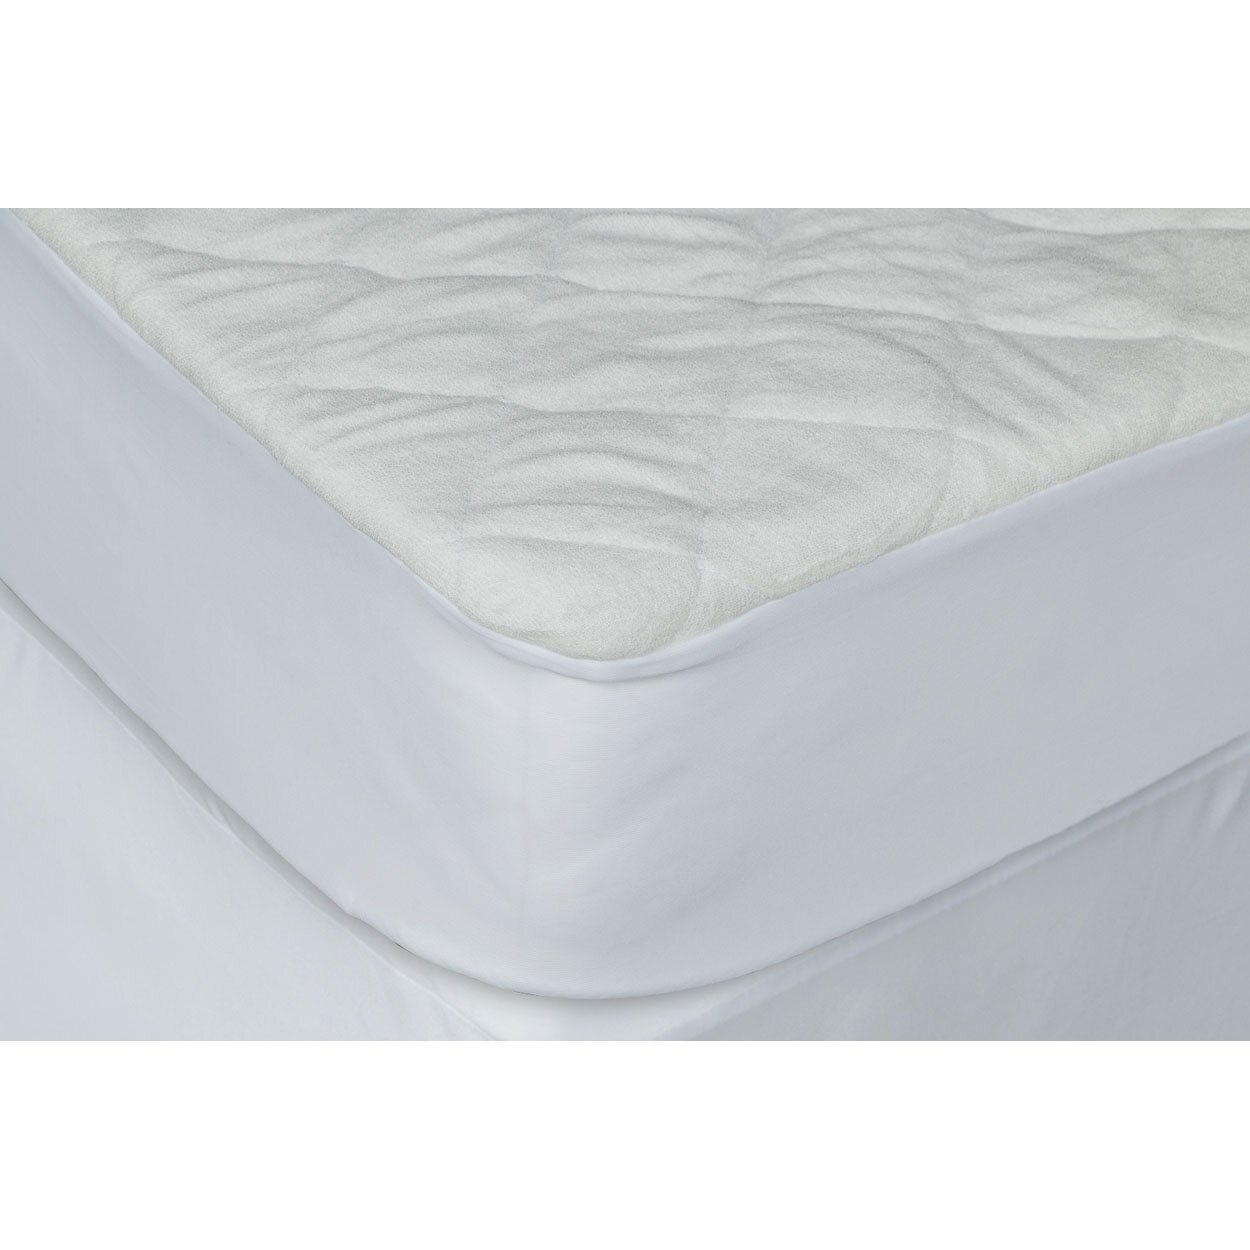 ac pacific crib with pad liner hypoallergenic waterproof With bed liner mattress protector